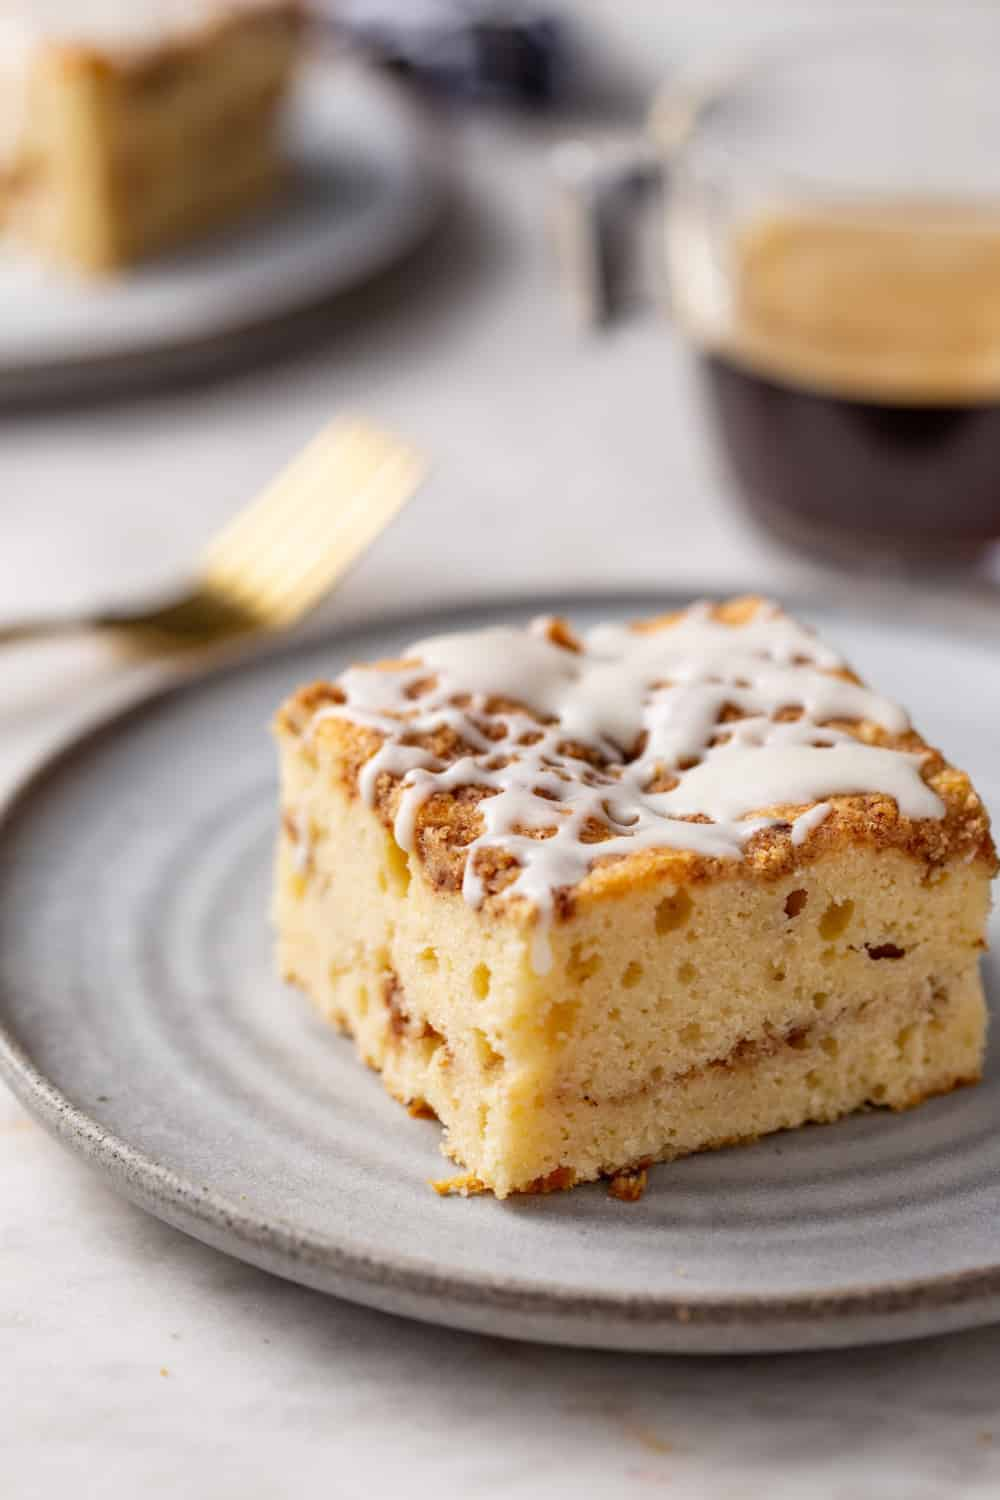 Angled view of cinnamon coffee cake on a white plate with gold fork and cup of espresso visible in the background. Cake topped with vanilla glaze